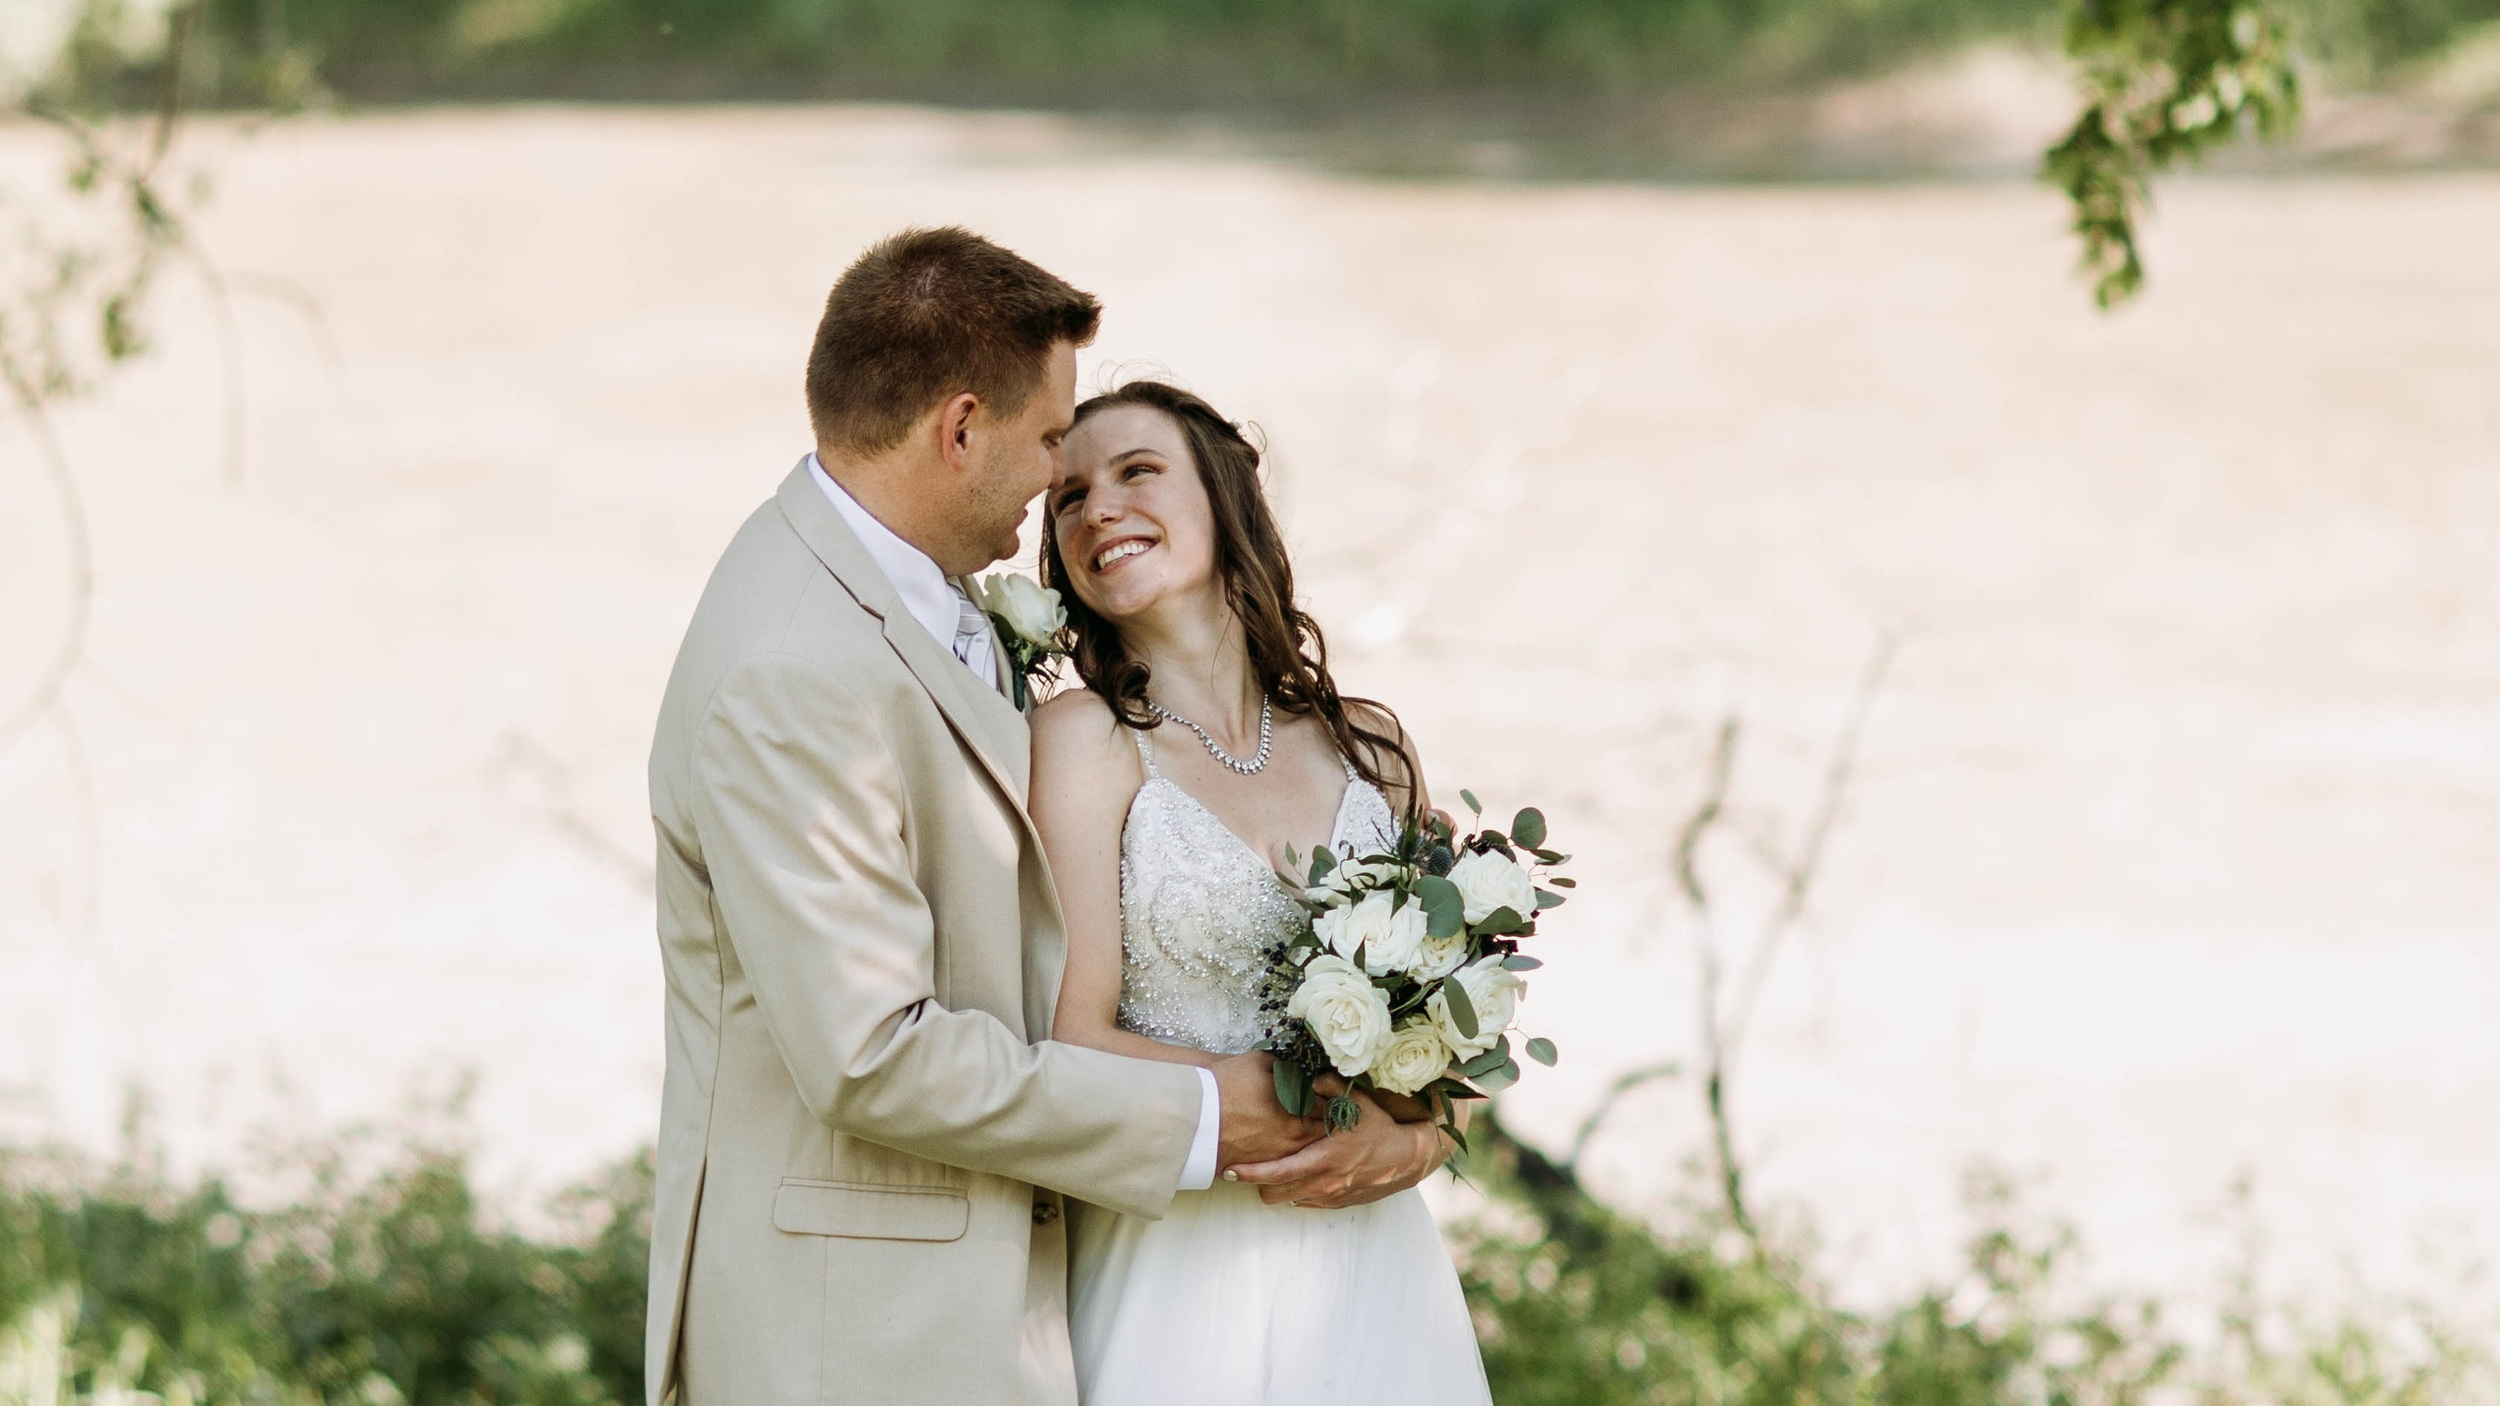 Lifestyle portrait wedding photographer st paul minneapolis minnesota isitRachelle